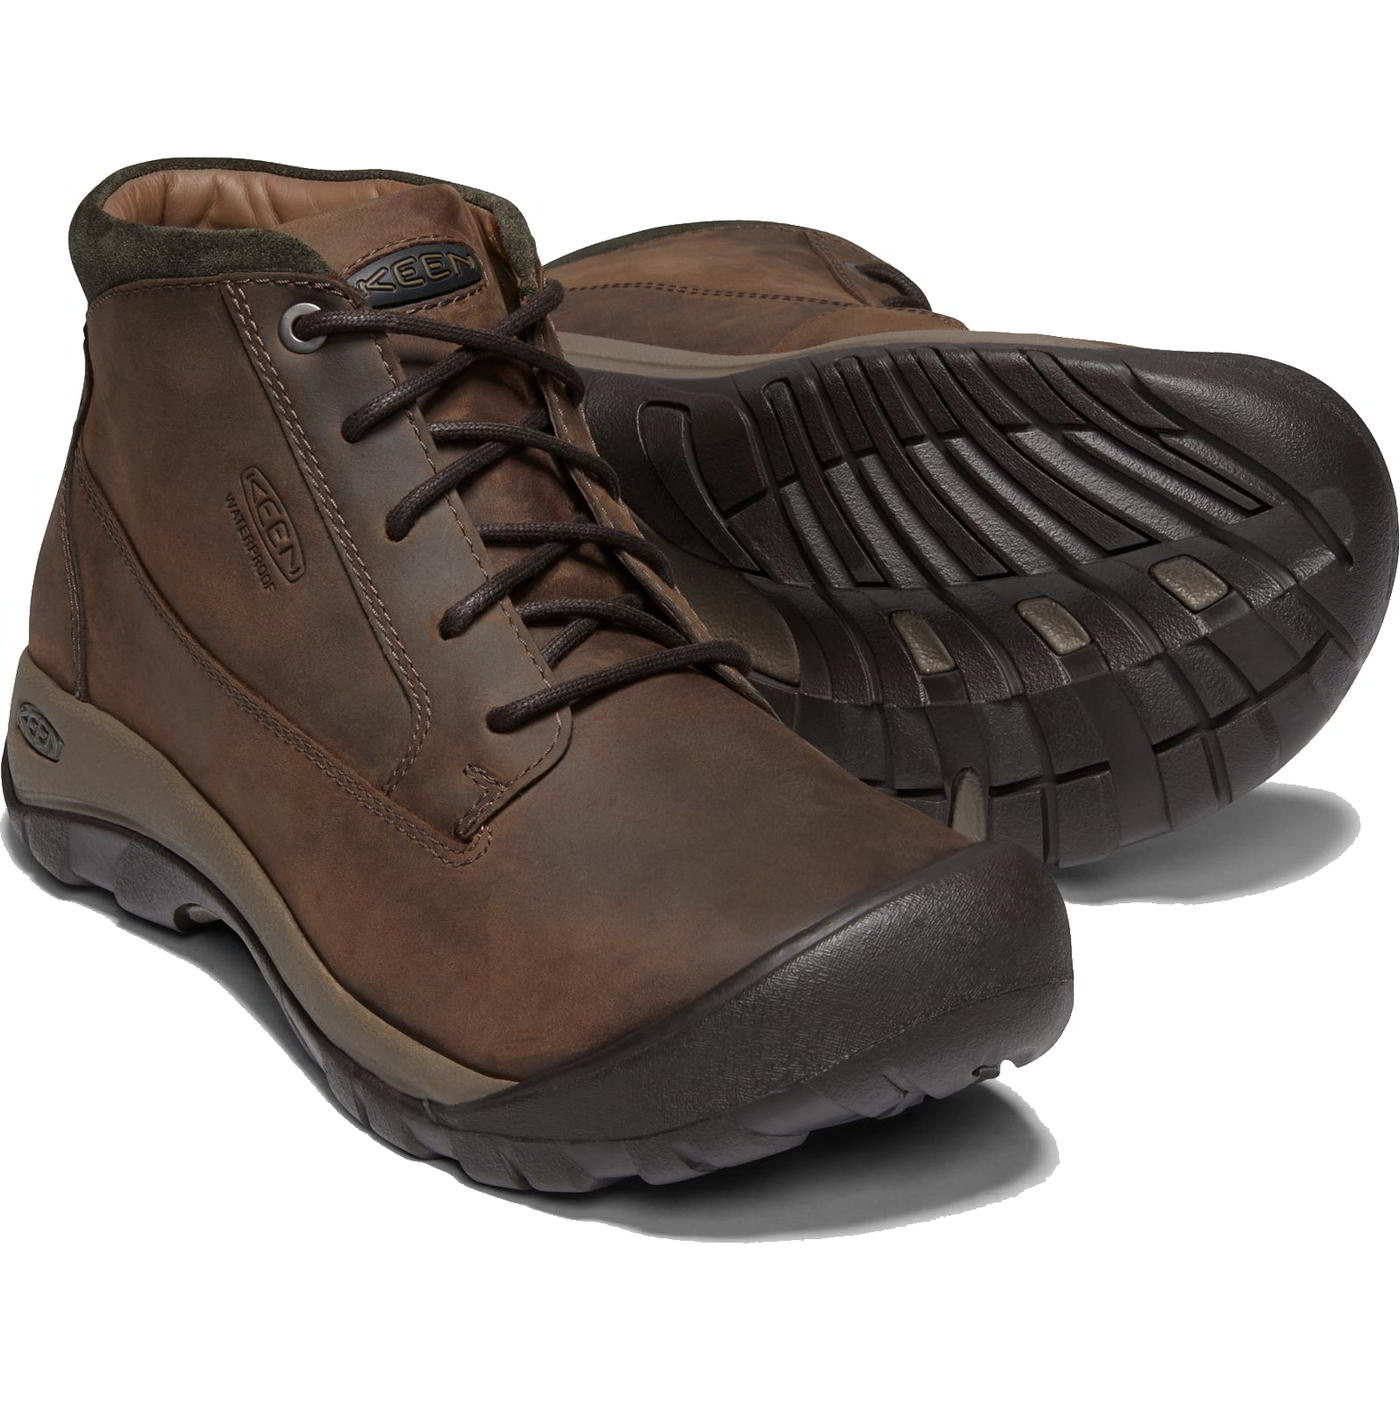 880e65270da7 Details about Keen Austin Casual Mid Mens Waterproof Leather Walking Hiking  Boots Size 8-11